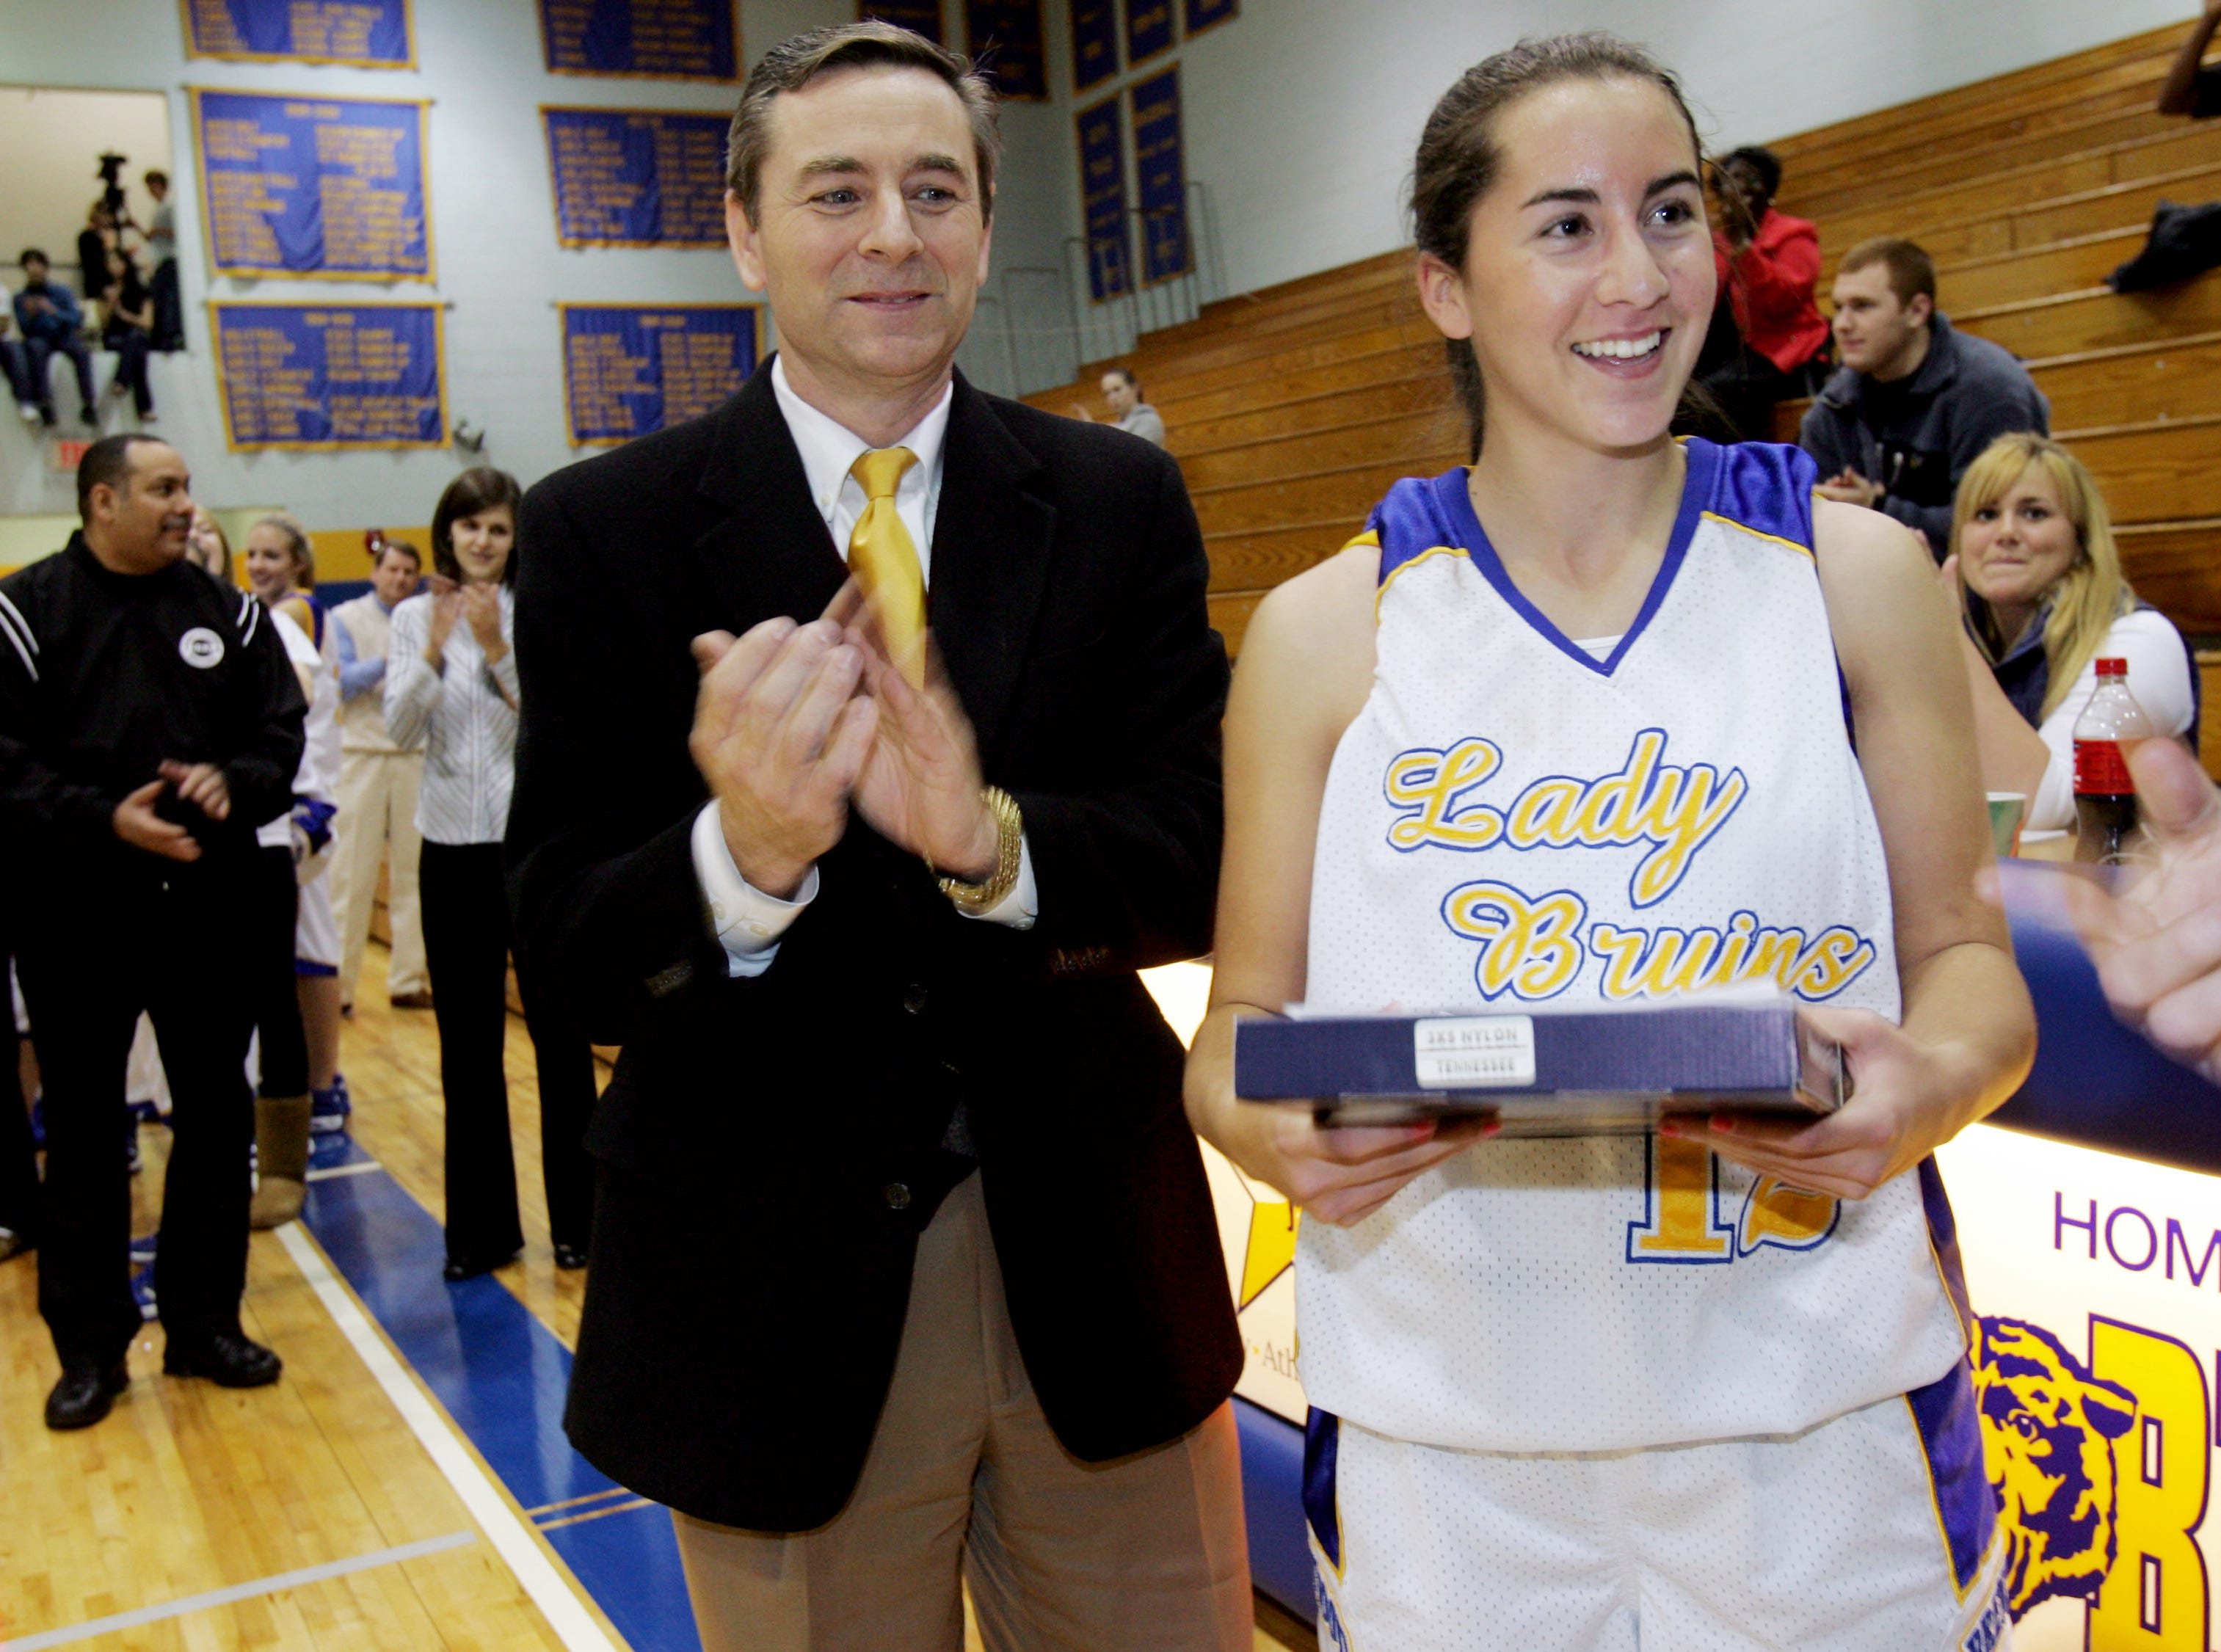 Dana Schwartz, right, of Brentwood High School accepts a state flag flown in her honor from Rep. Glenn Casada, left, and Sen. Jack Johnson (not shown) on Jan. 30, 2009. Schwartz was chosen to be part of the U.S. Soccer Team in the Maccabiah Games in Israel.